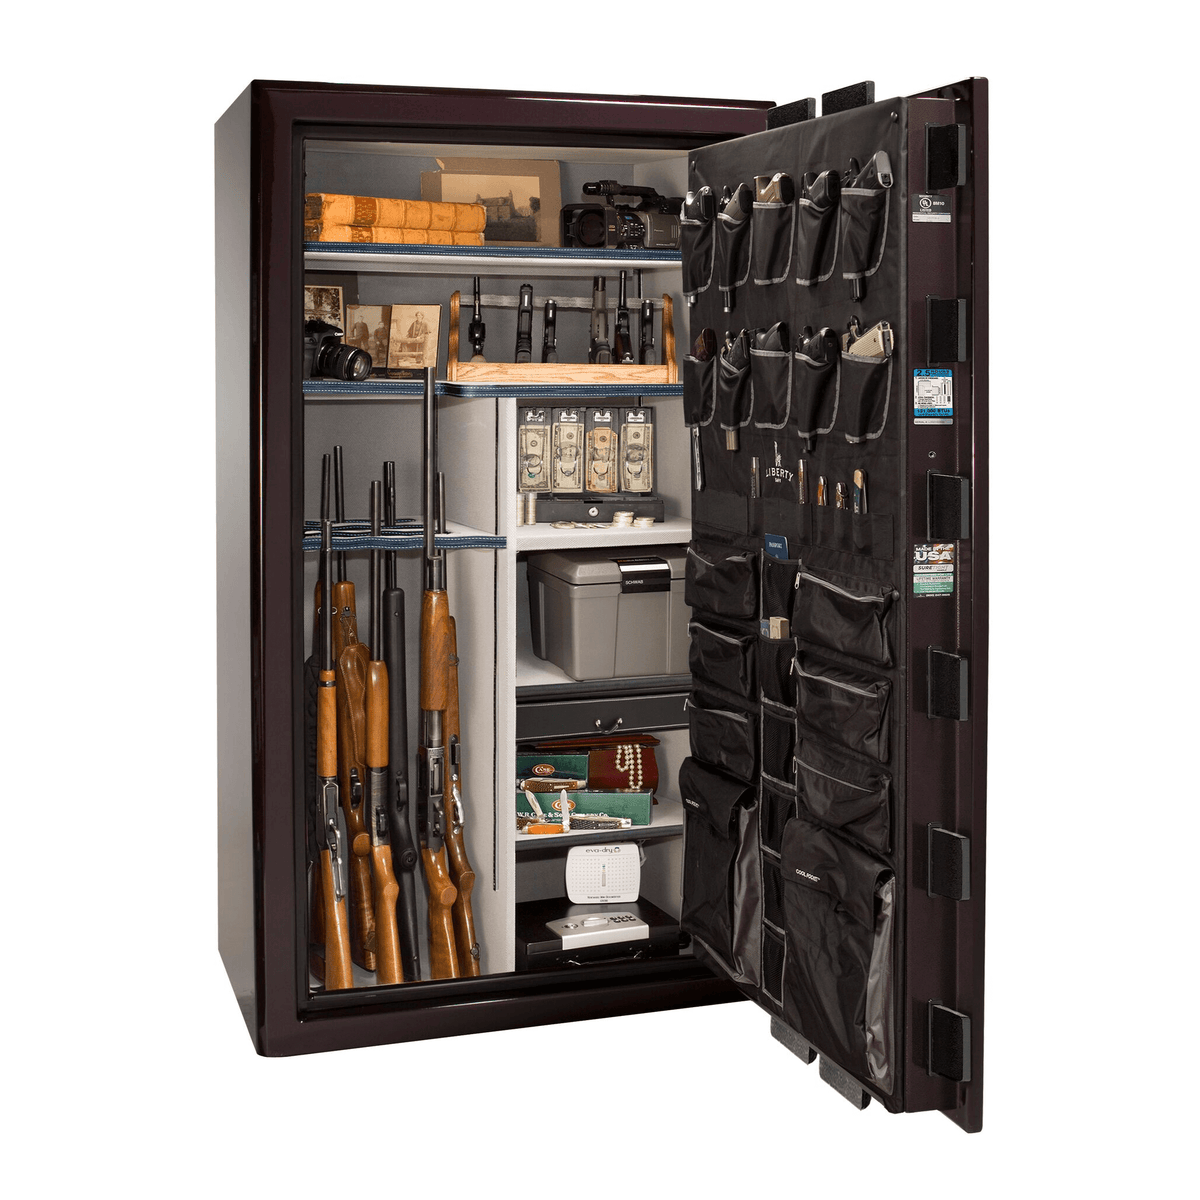 "Presidential | 50 | Level 8 Security | 2.5 Hours Fire Protection | Black Cherry Gloss | Black Electronic Lock | 72.5""(H) x 42""(W) x 32""(D)"